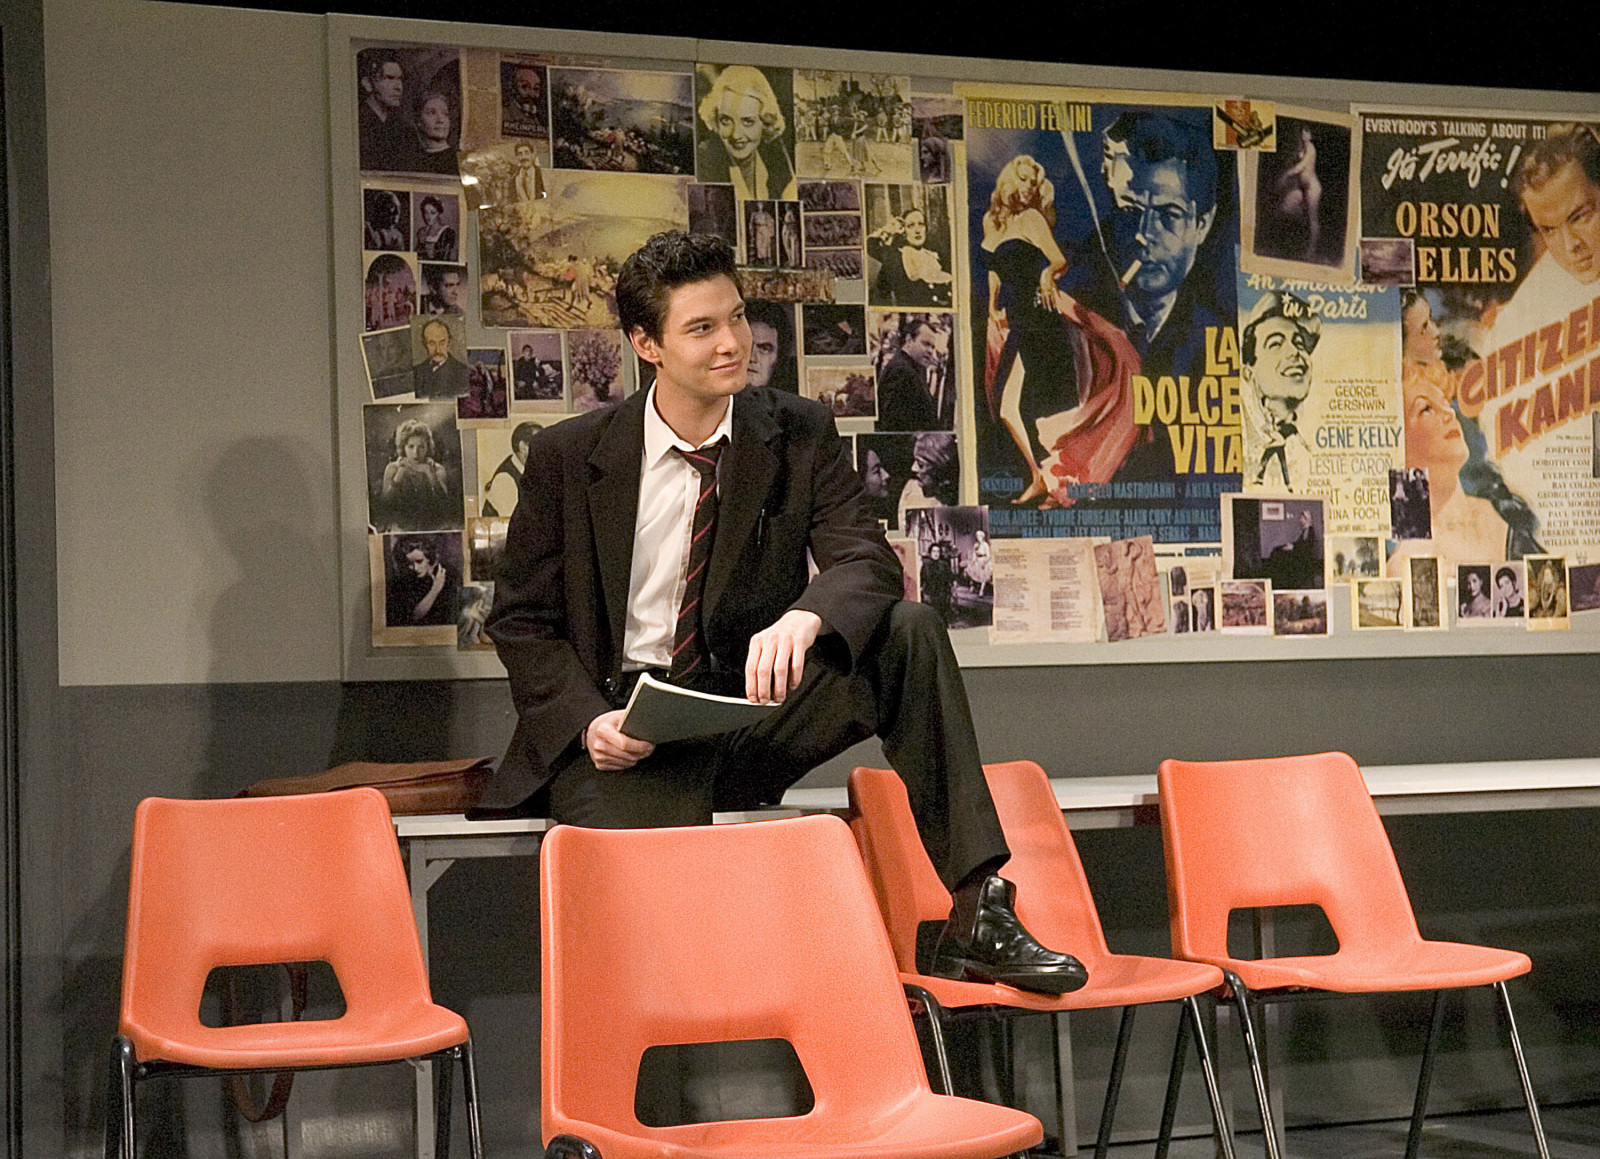 history boys An unruly bunch of bright, funny sixth-form boys in pursuit of sex, sport and a place at university a maverick english teacher at odds with the young and shrewd supply teacher a headmaster obsessed with results a history teacher who thinks he's a fool in alan bennett's classic play, staff room .